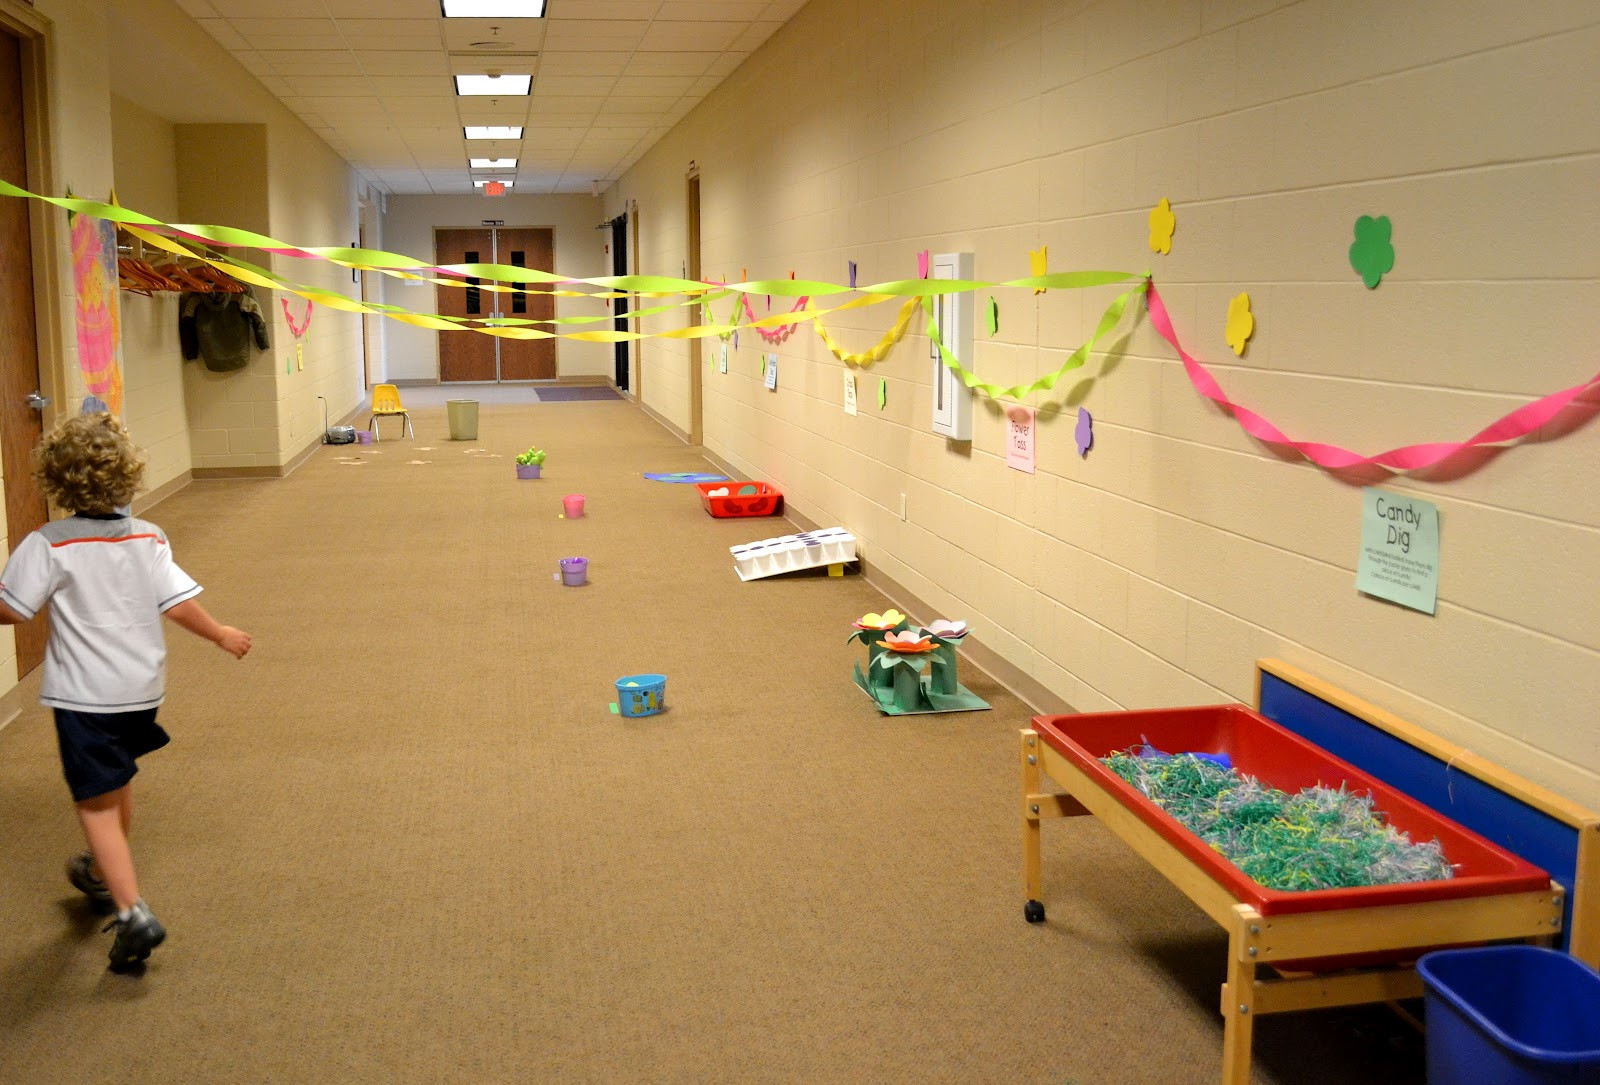 Kindergarten Easter Party Ideas  From The Hive Easter Party preschool style